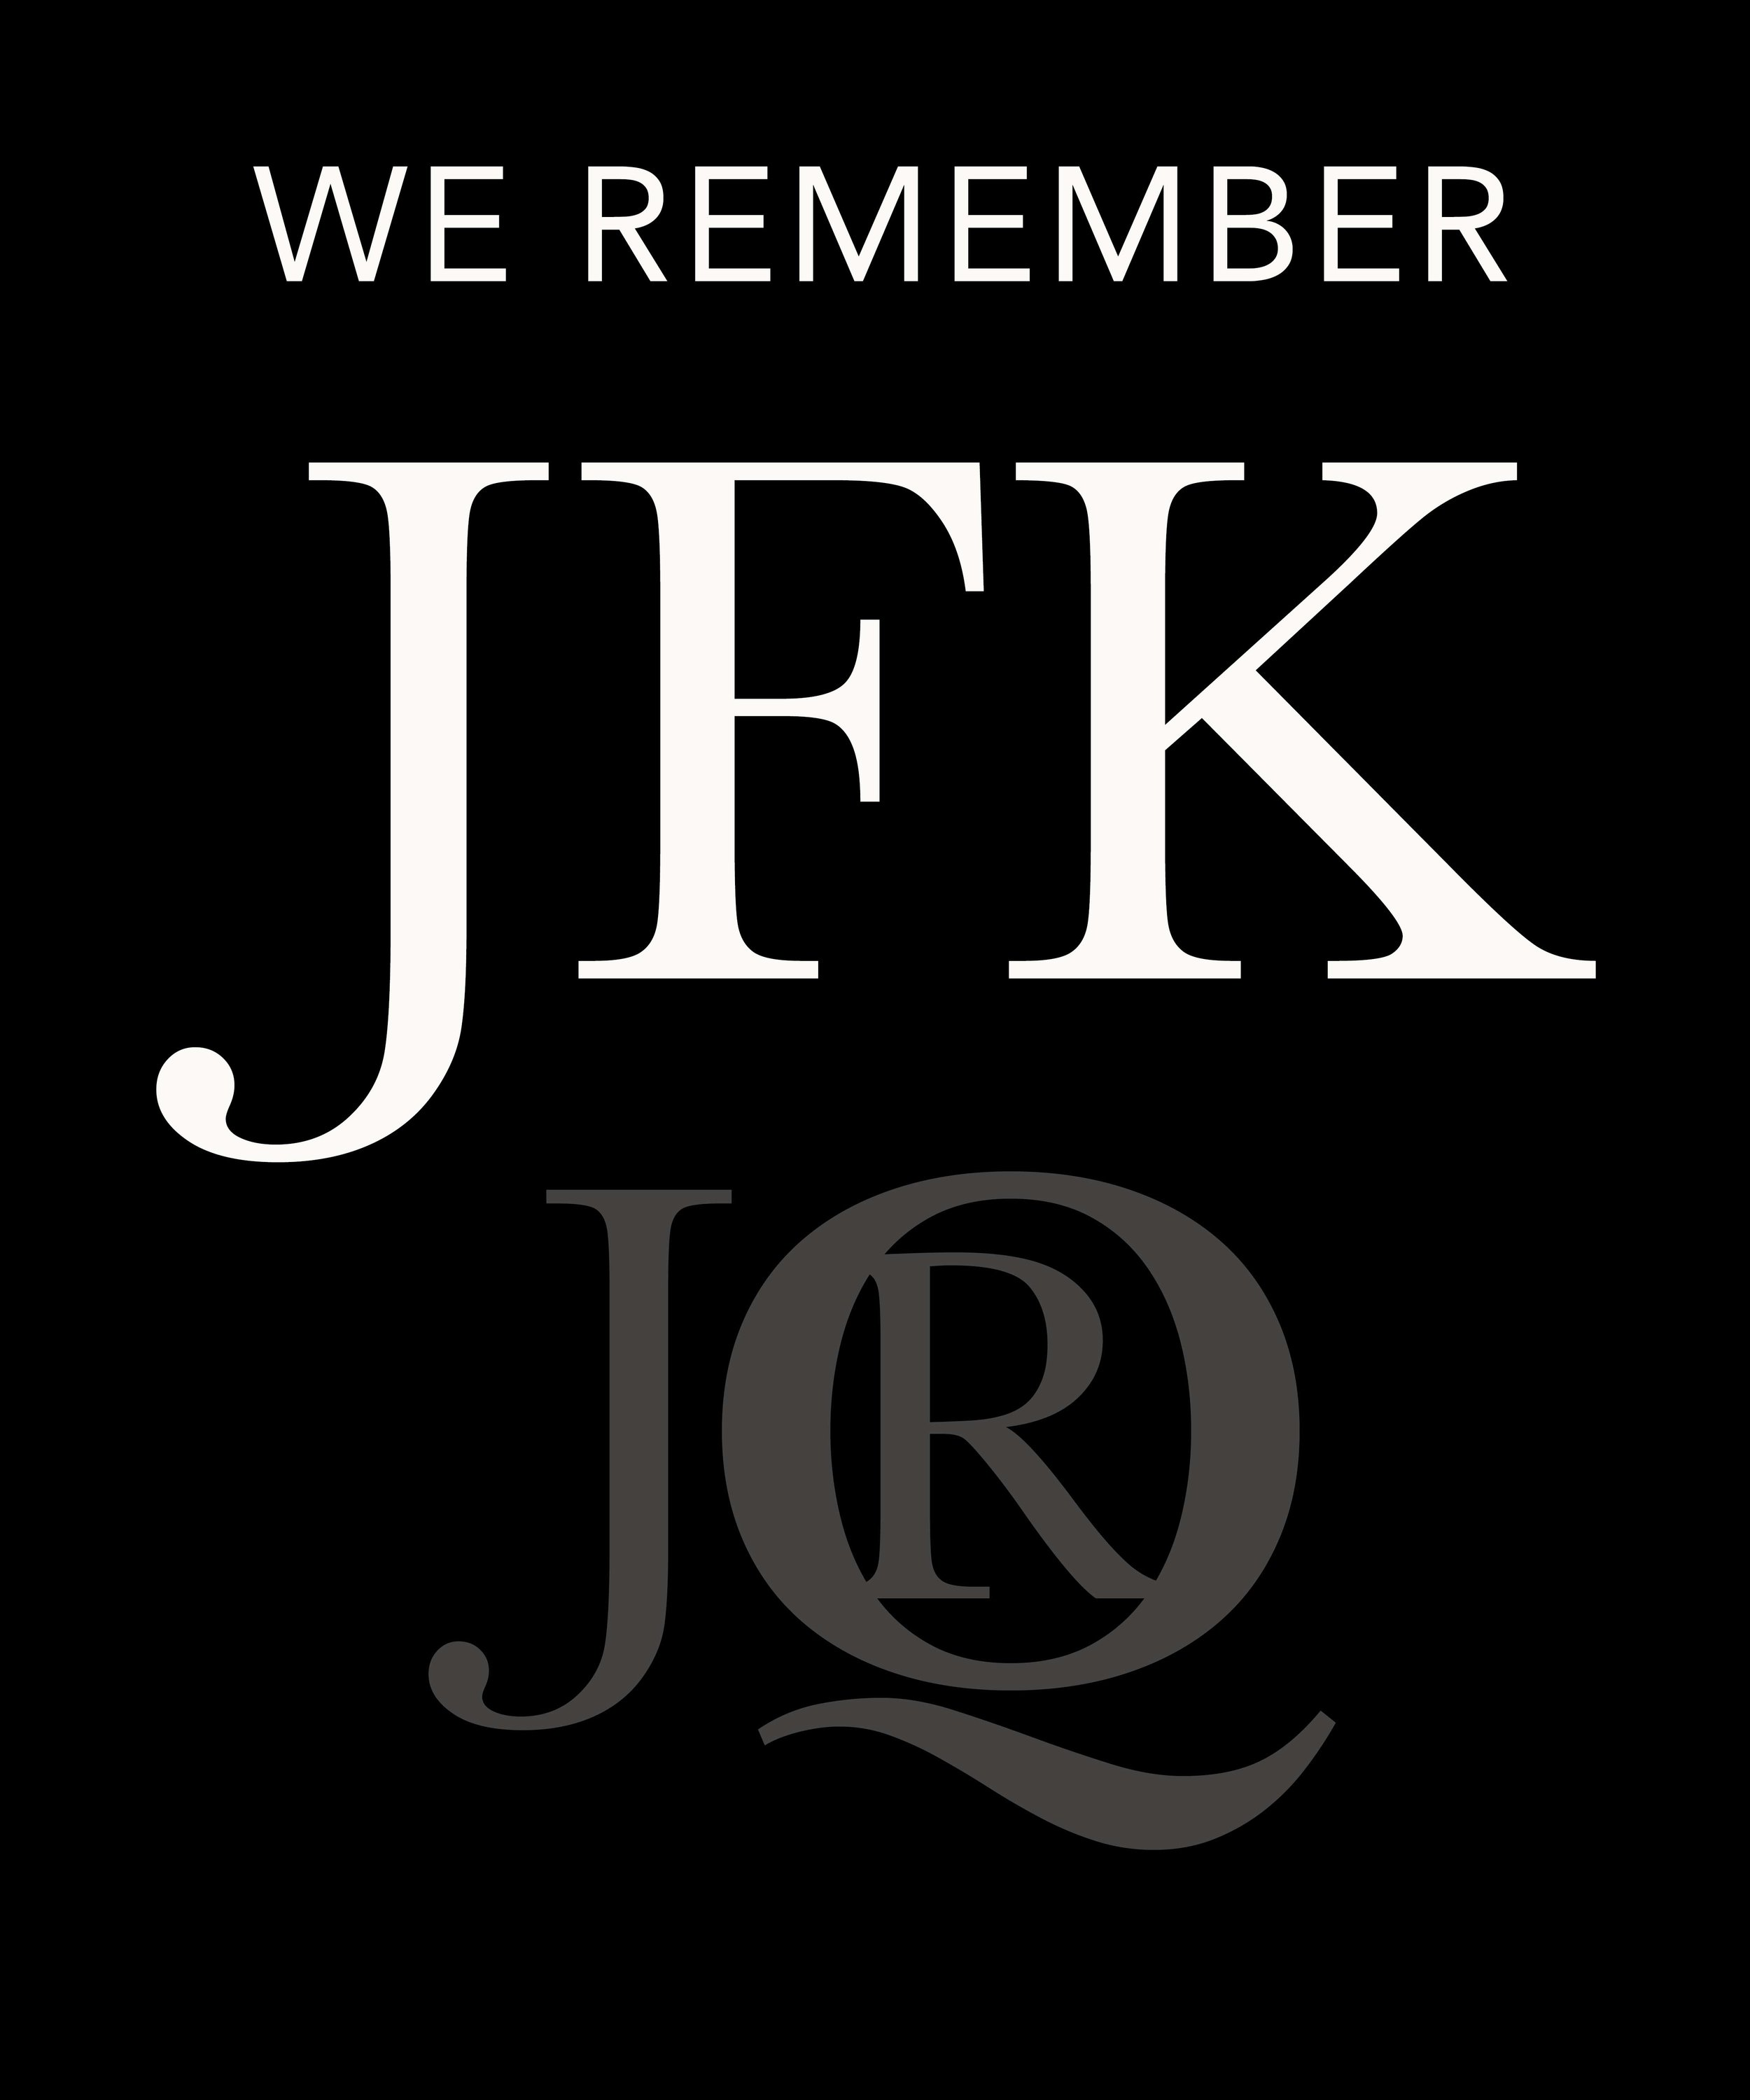 we remember jfk.jpg